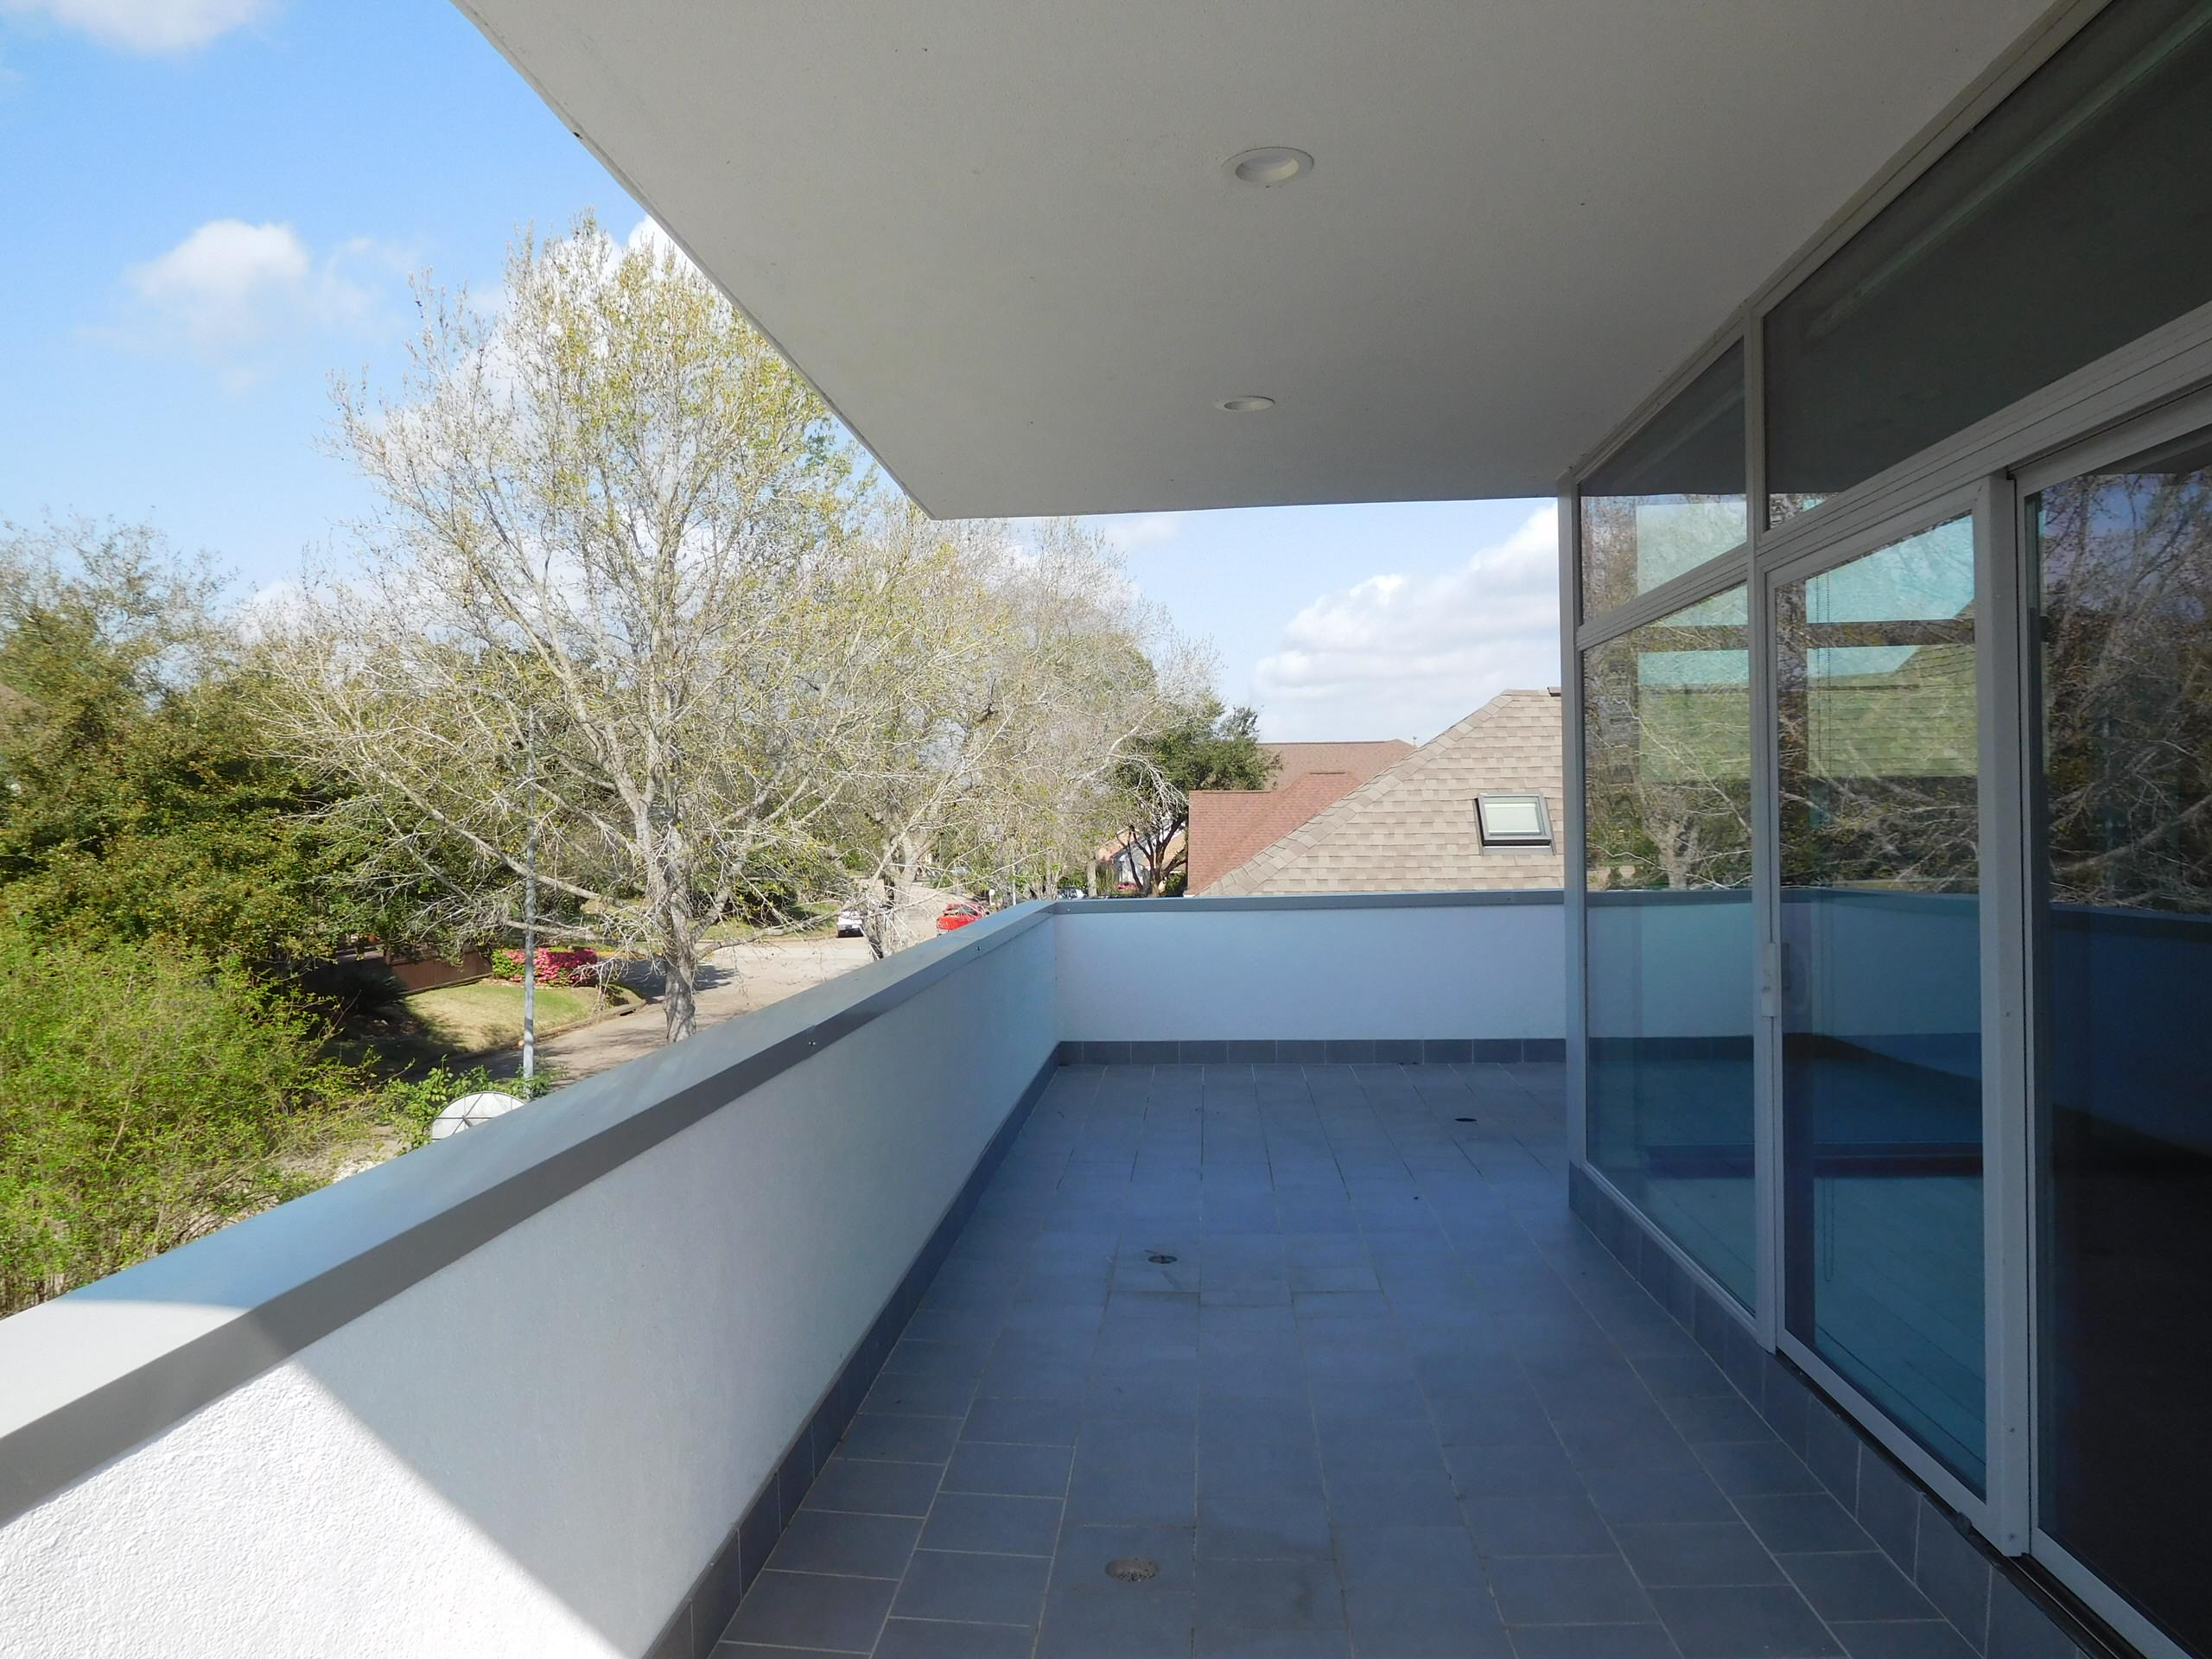 Terrace with cantilevered roof